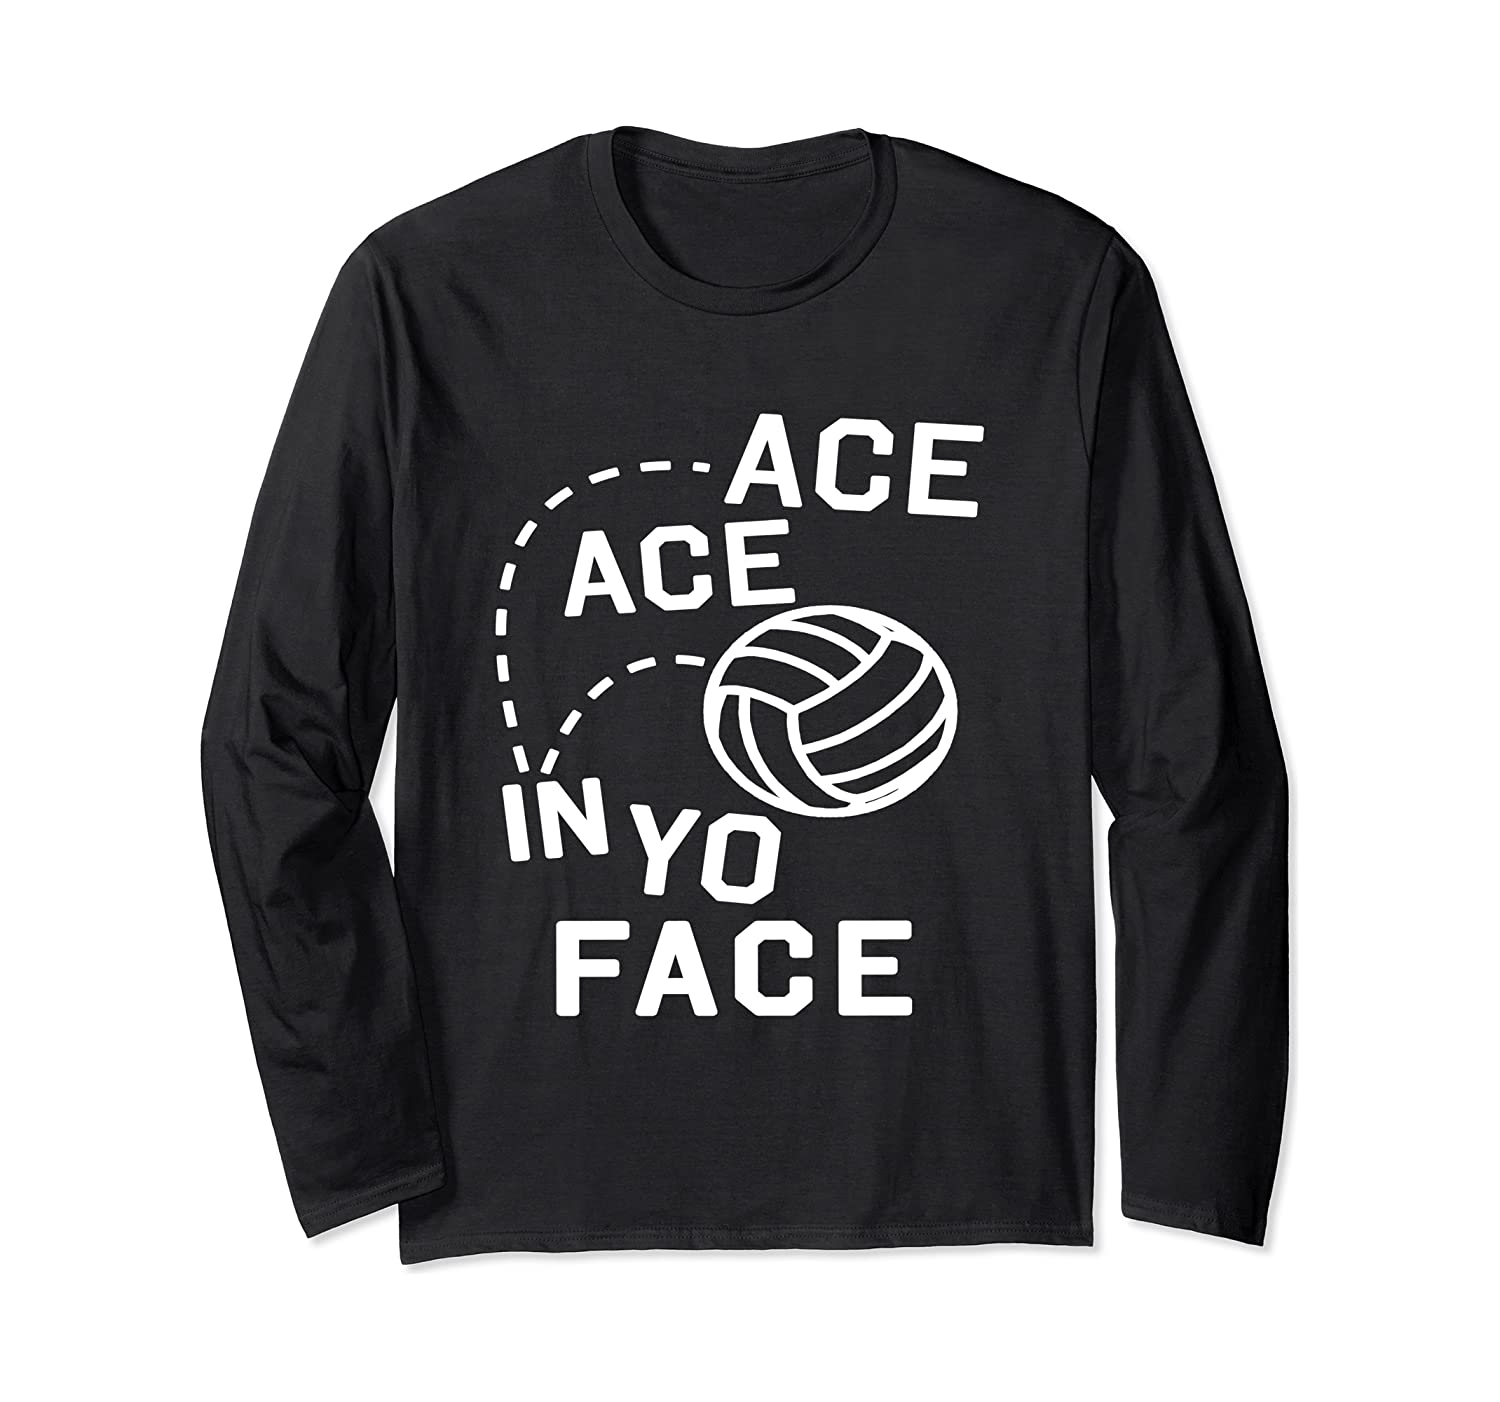 Funny Volleyball Long Sleeve Shirt For Teens - ACE FACE